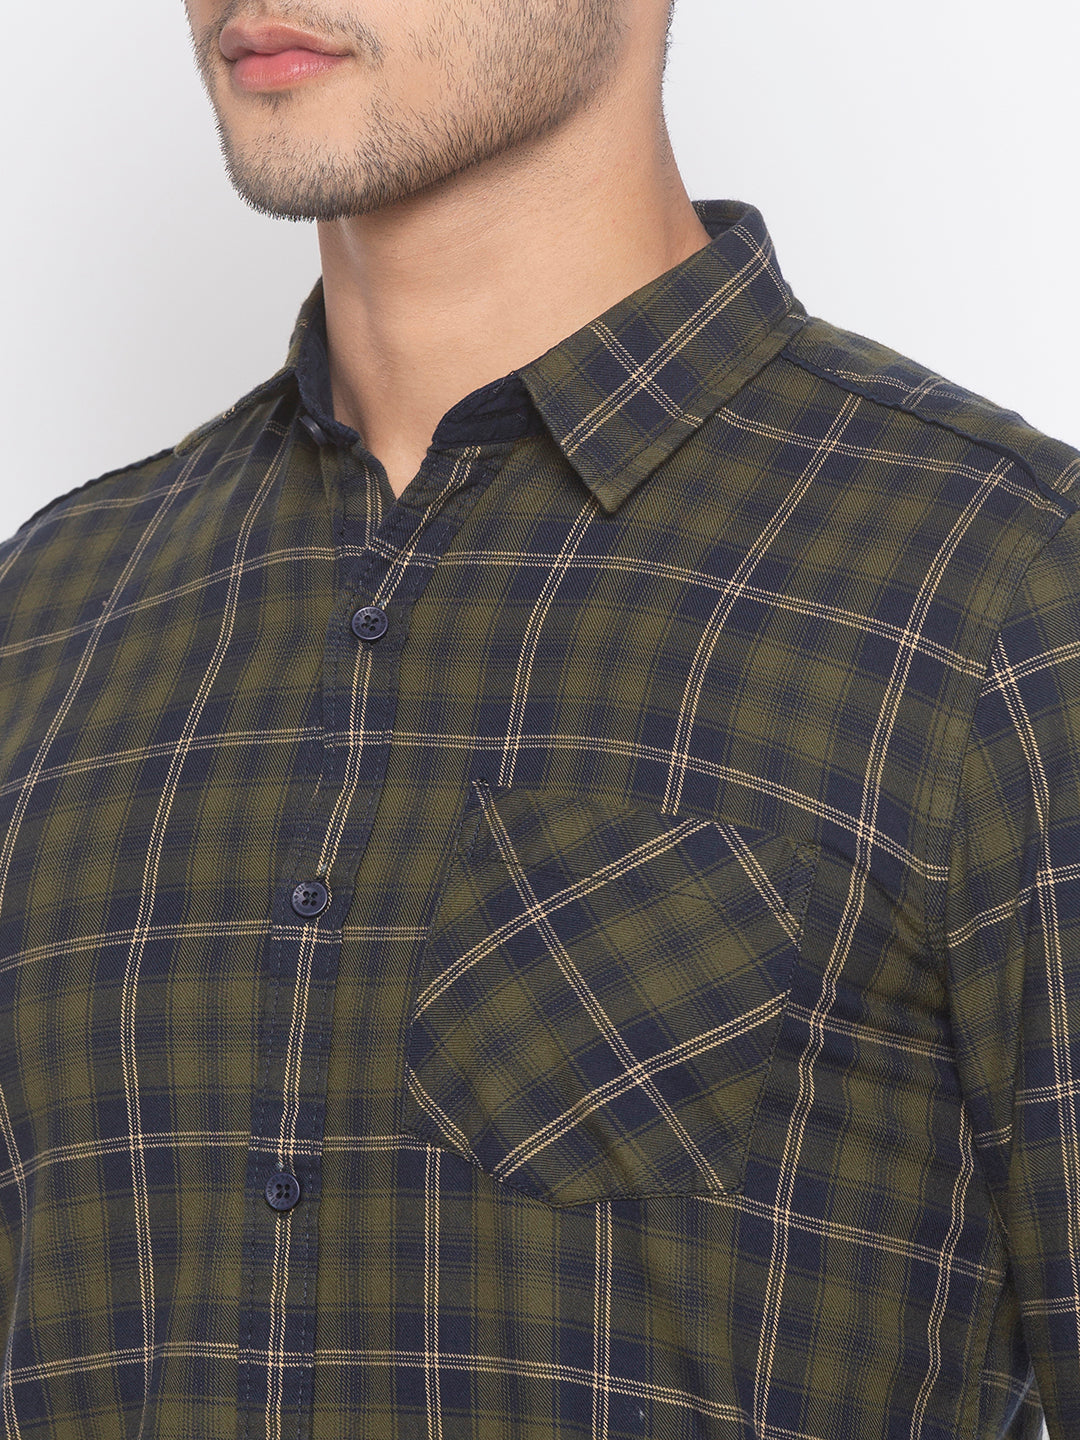 Globus Olive Checked Shirt-5